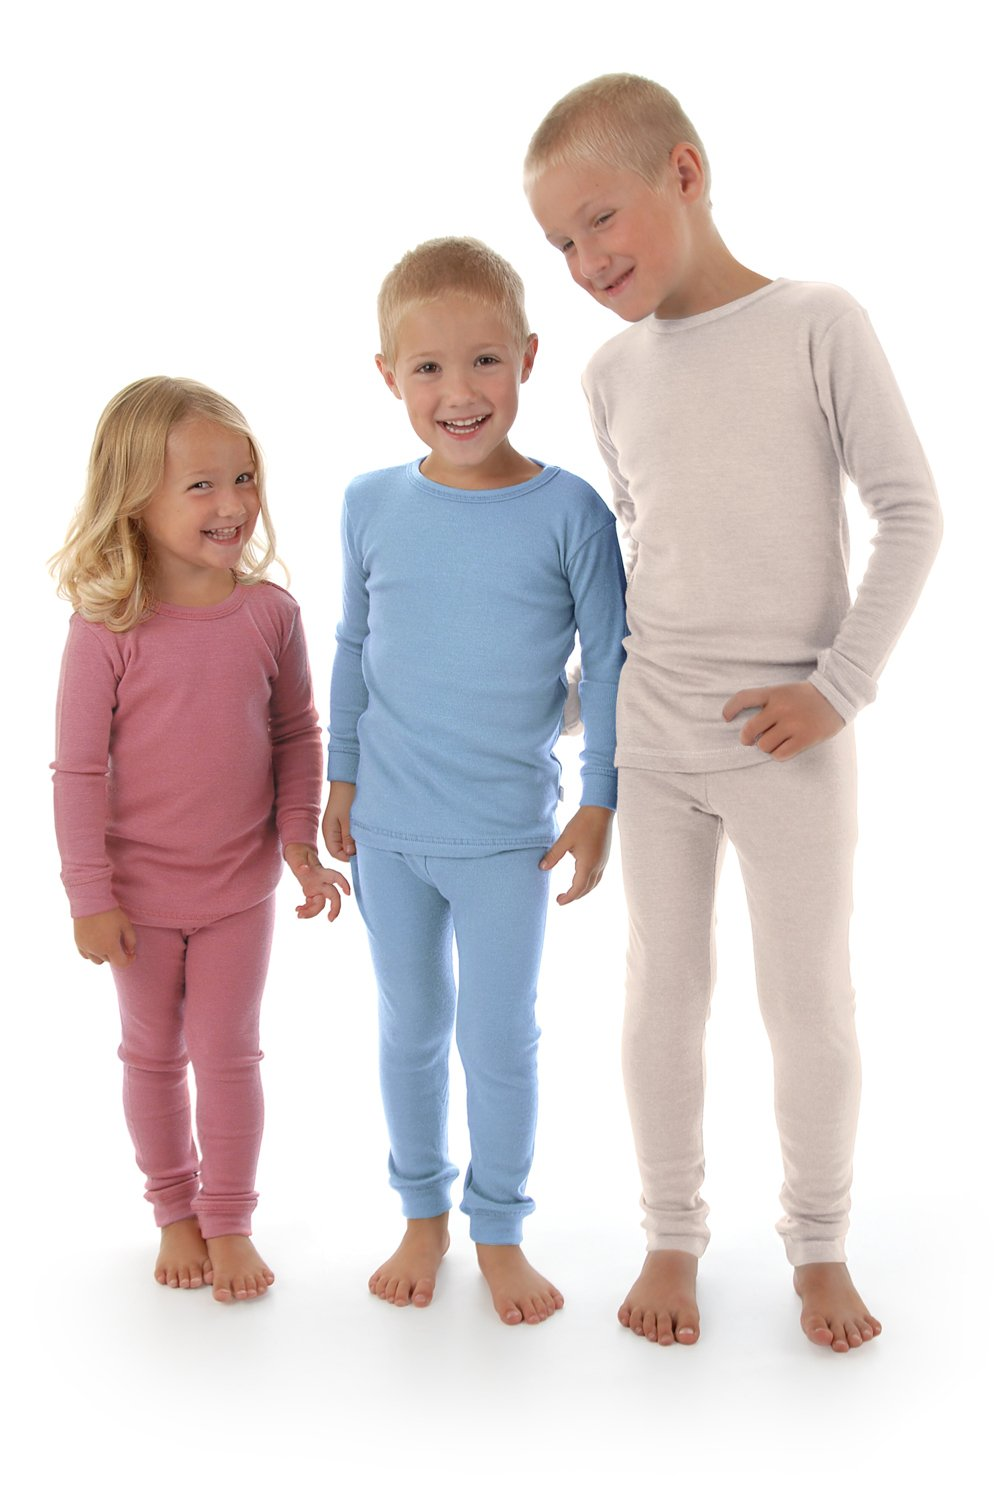 Merino Wool Kid White boy and Girl. Thermal Underwear Base Layer Unisex. Size 6